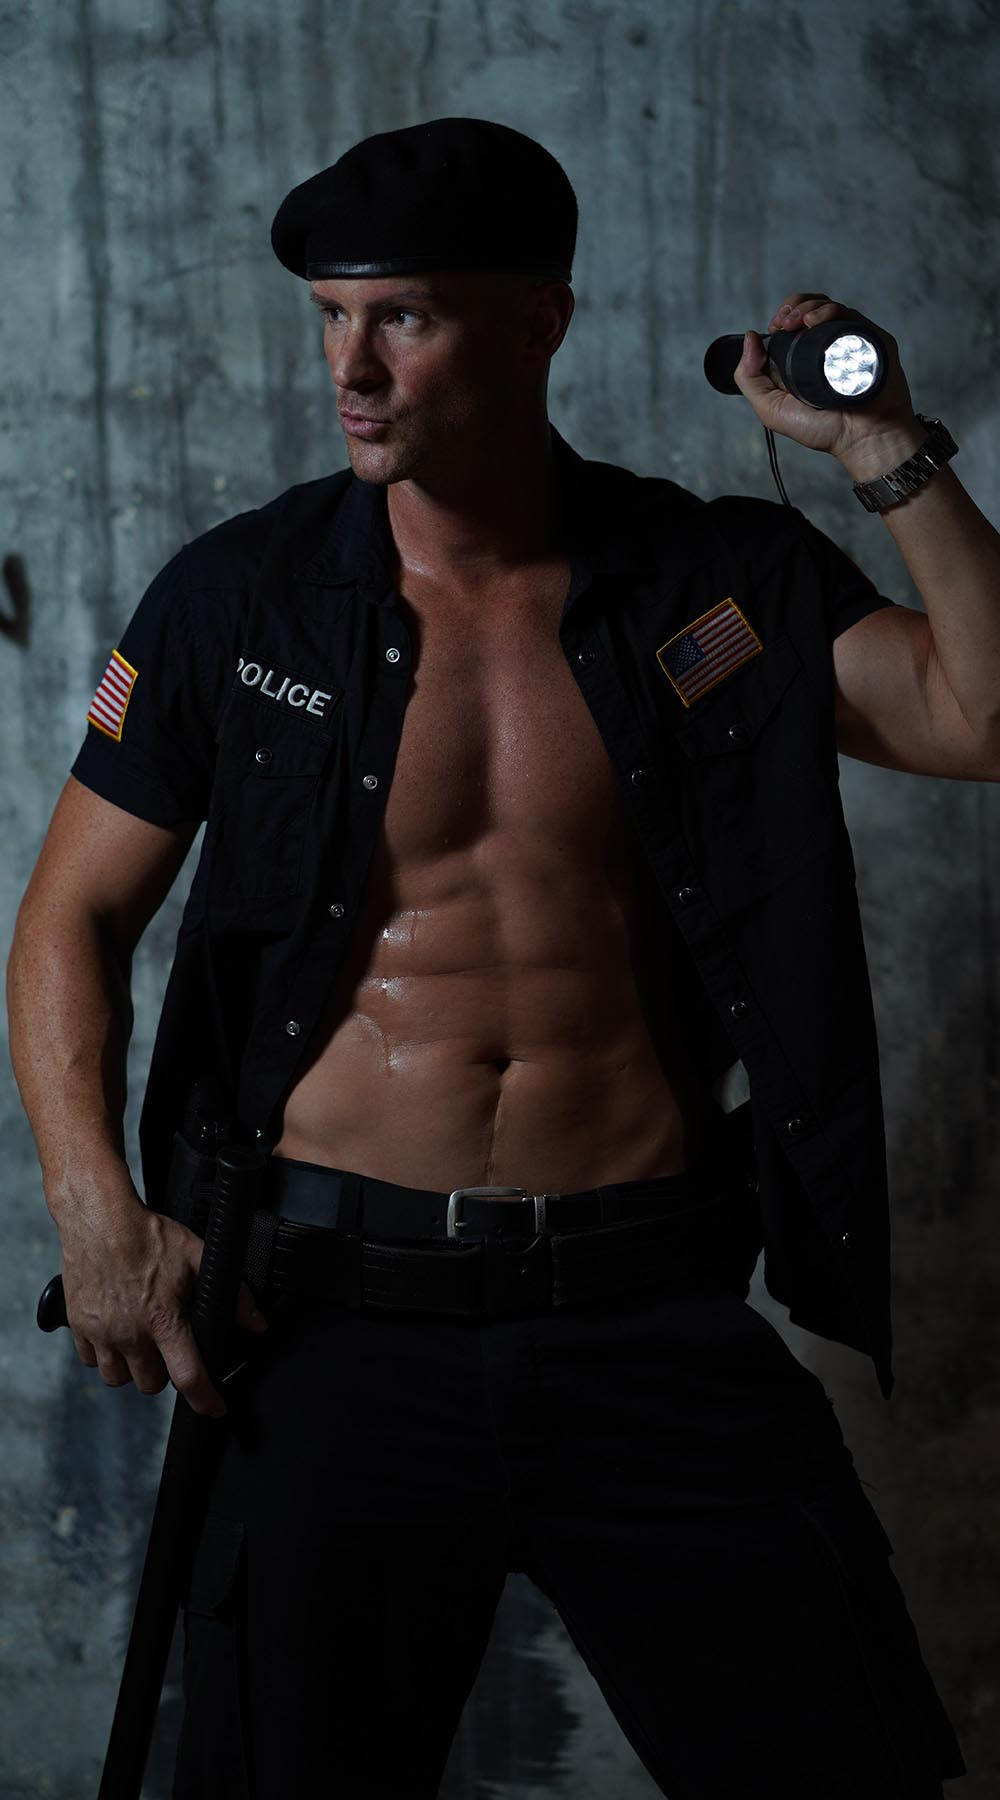 Stripper CHRIS aus Wien als Police Officer